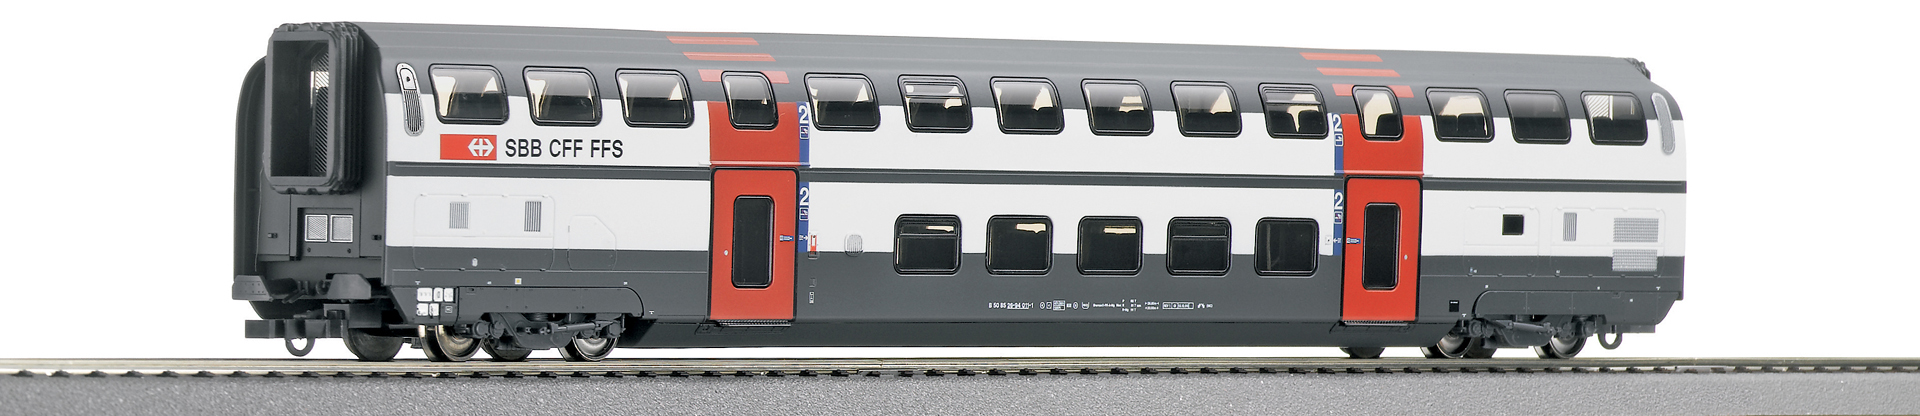 Roco64852 IC2000 double deck SBB cl2